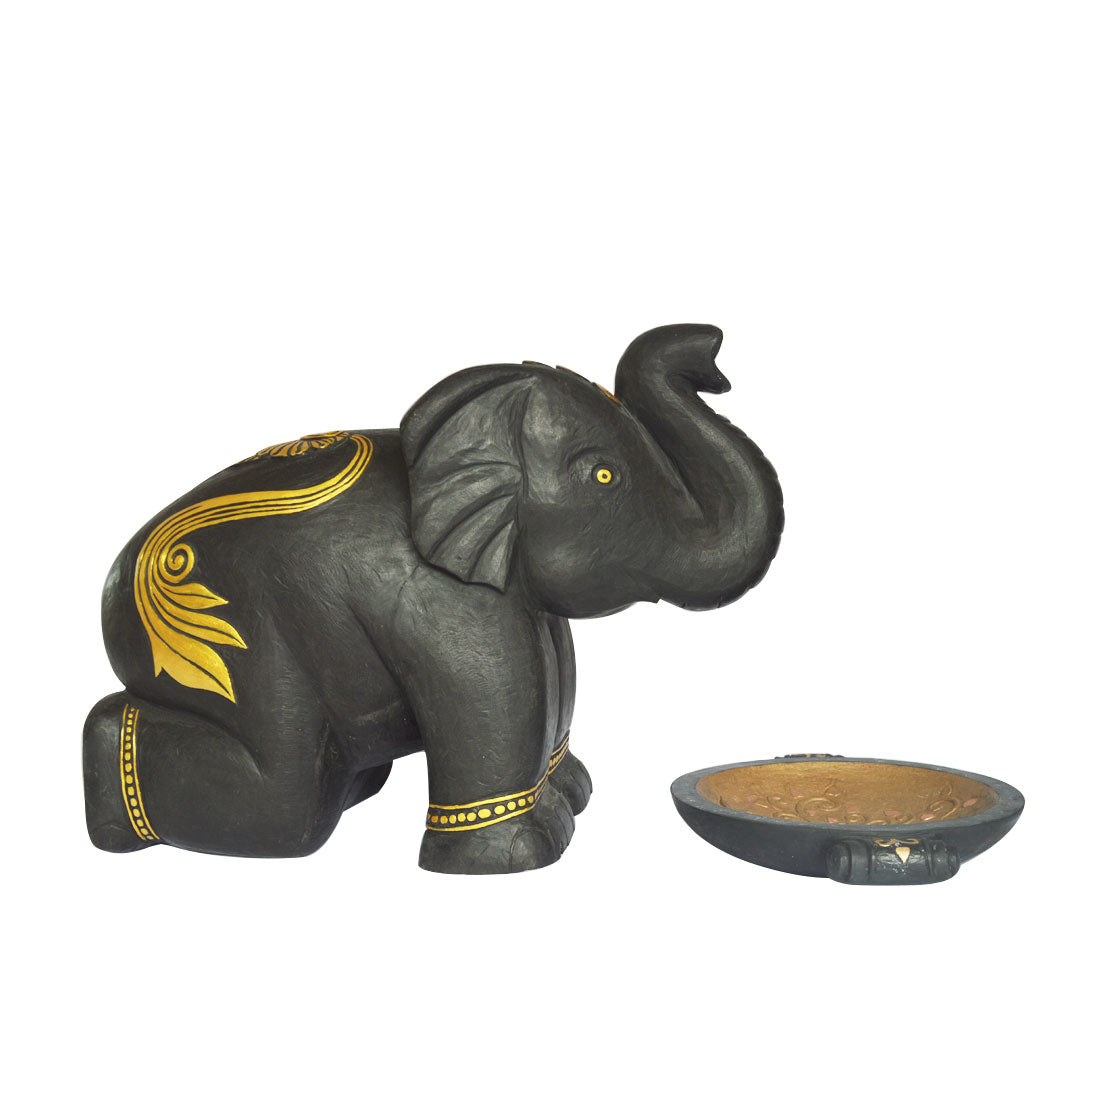 Buy large elephant decorative online | Elephant sculpture | Greymode